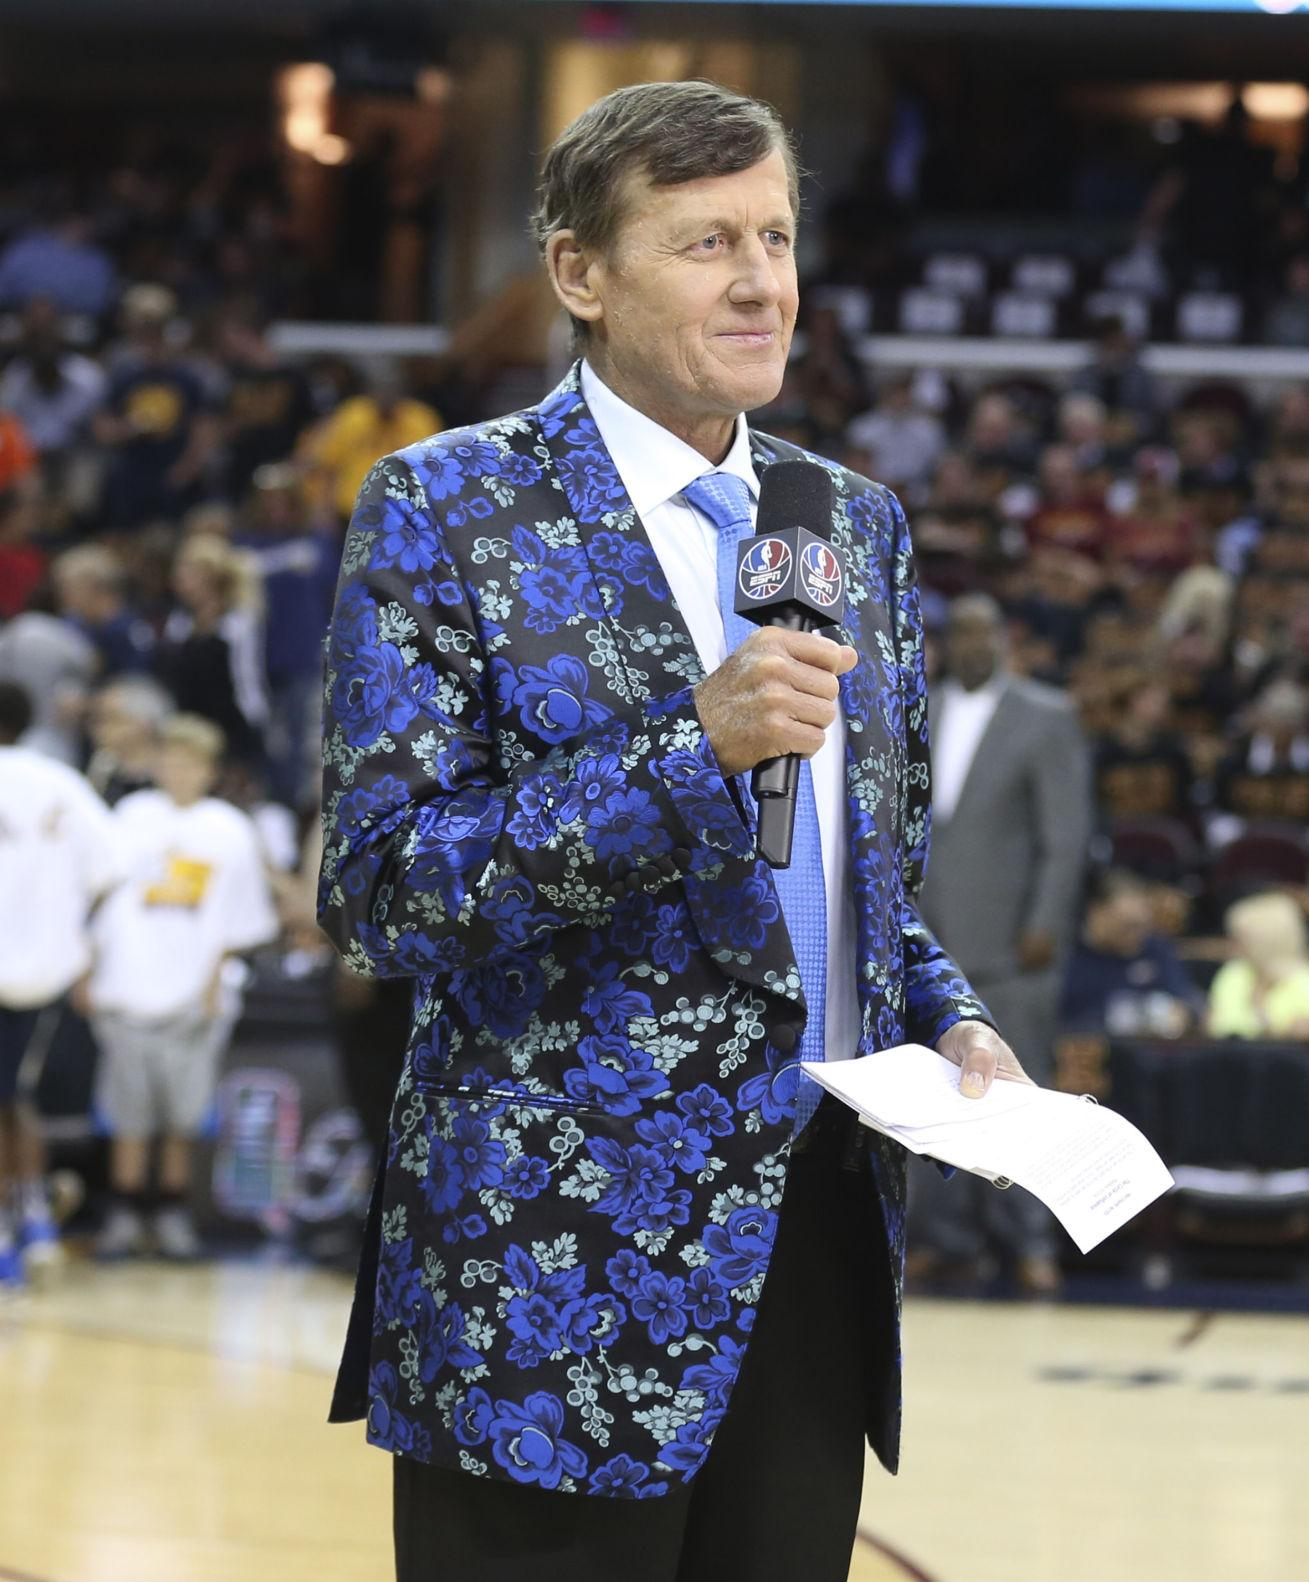 Reporter Craig Sager on the court before the Cleveland Cavaliers take on the Golden State Warriors in Game 6 of the NBA Finals on Thursday, June 16, 2016, at Quicken Loans Arena in Cleveland, Ohio. (Phil Masturzo/Akron Beacon Journal/TNS)